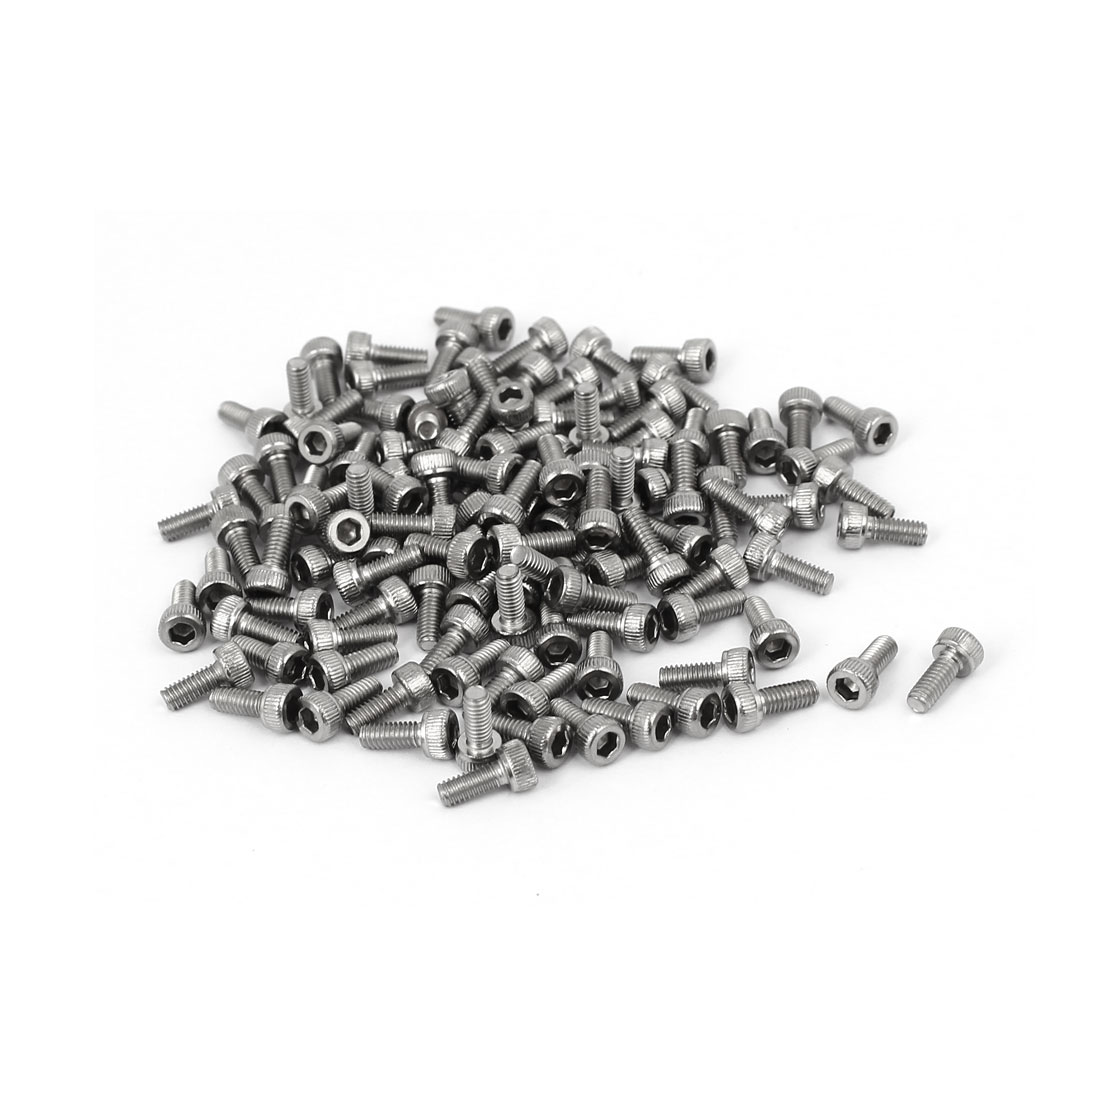 M2.5 x 6mm Thread 304 Stainless Steel Hex Socket Head Cap Screw DIN912 120pcs